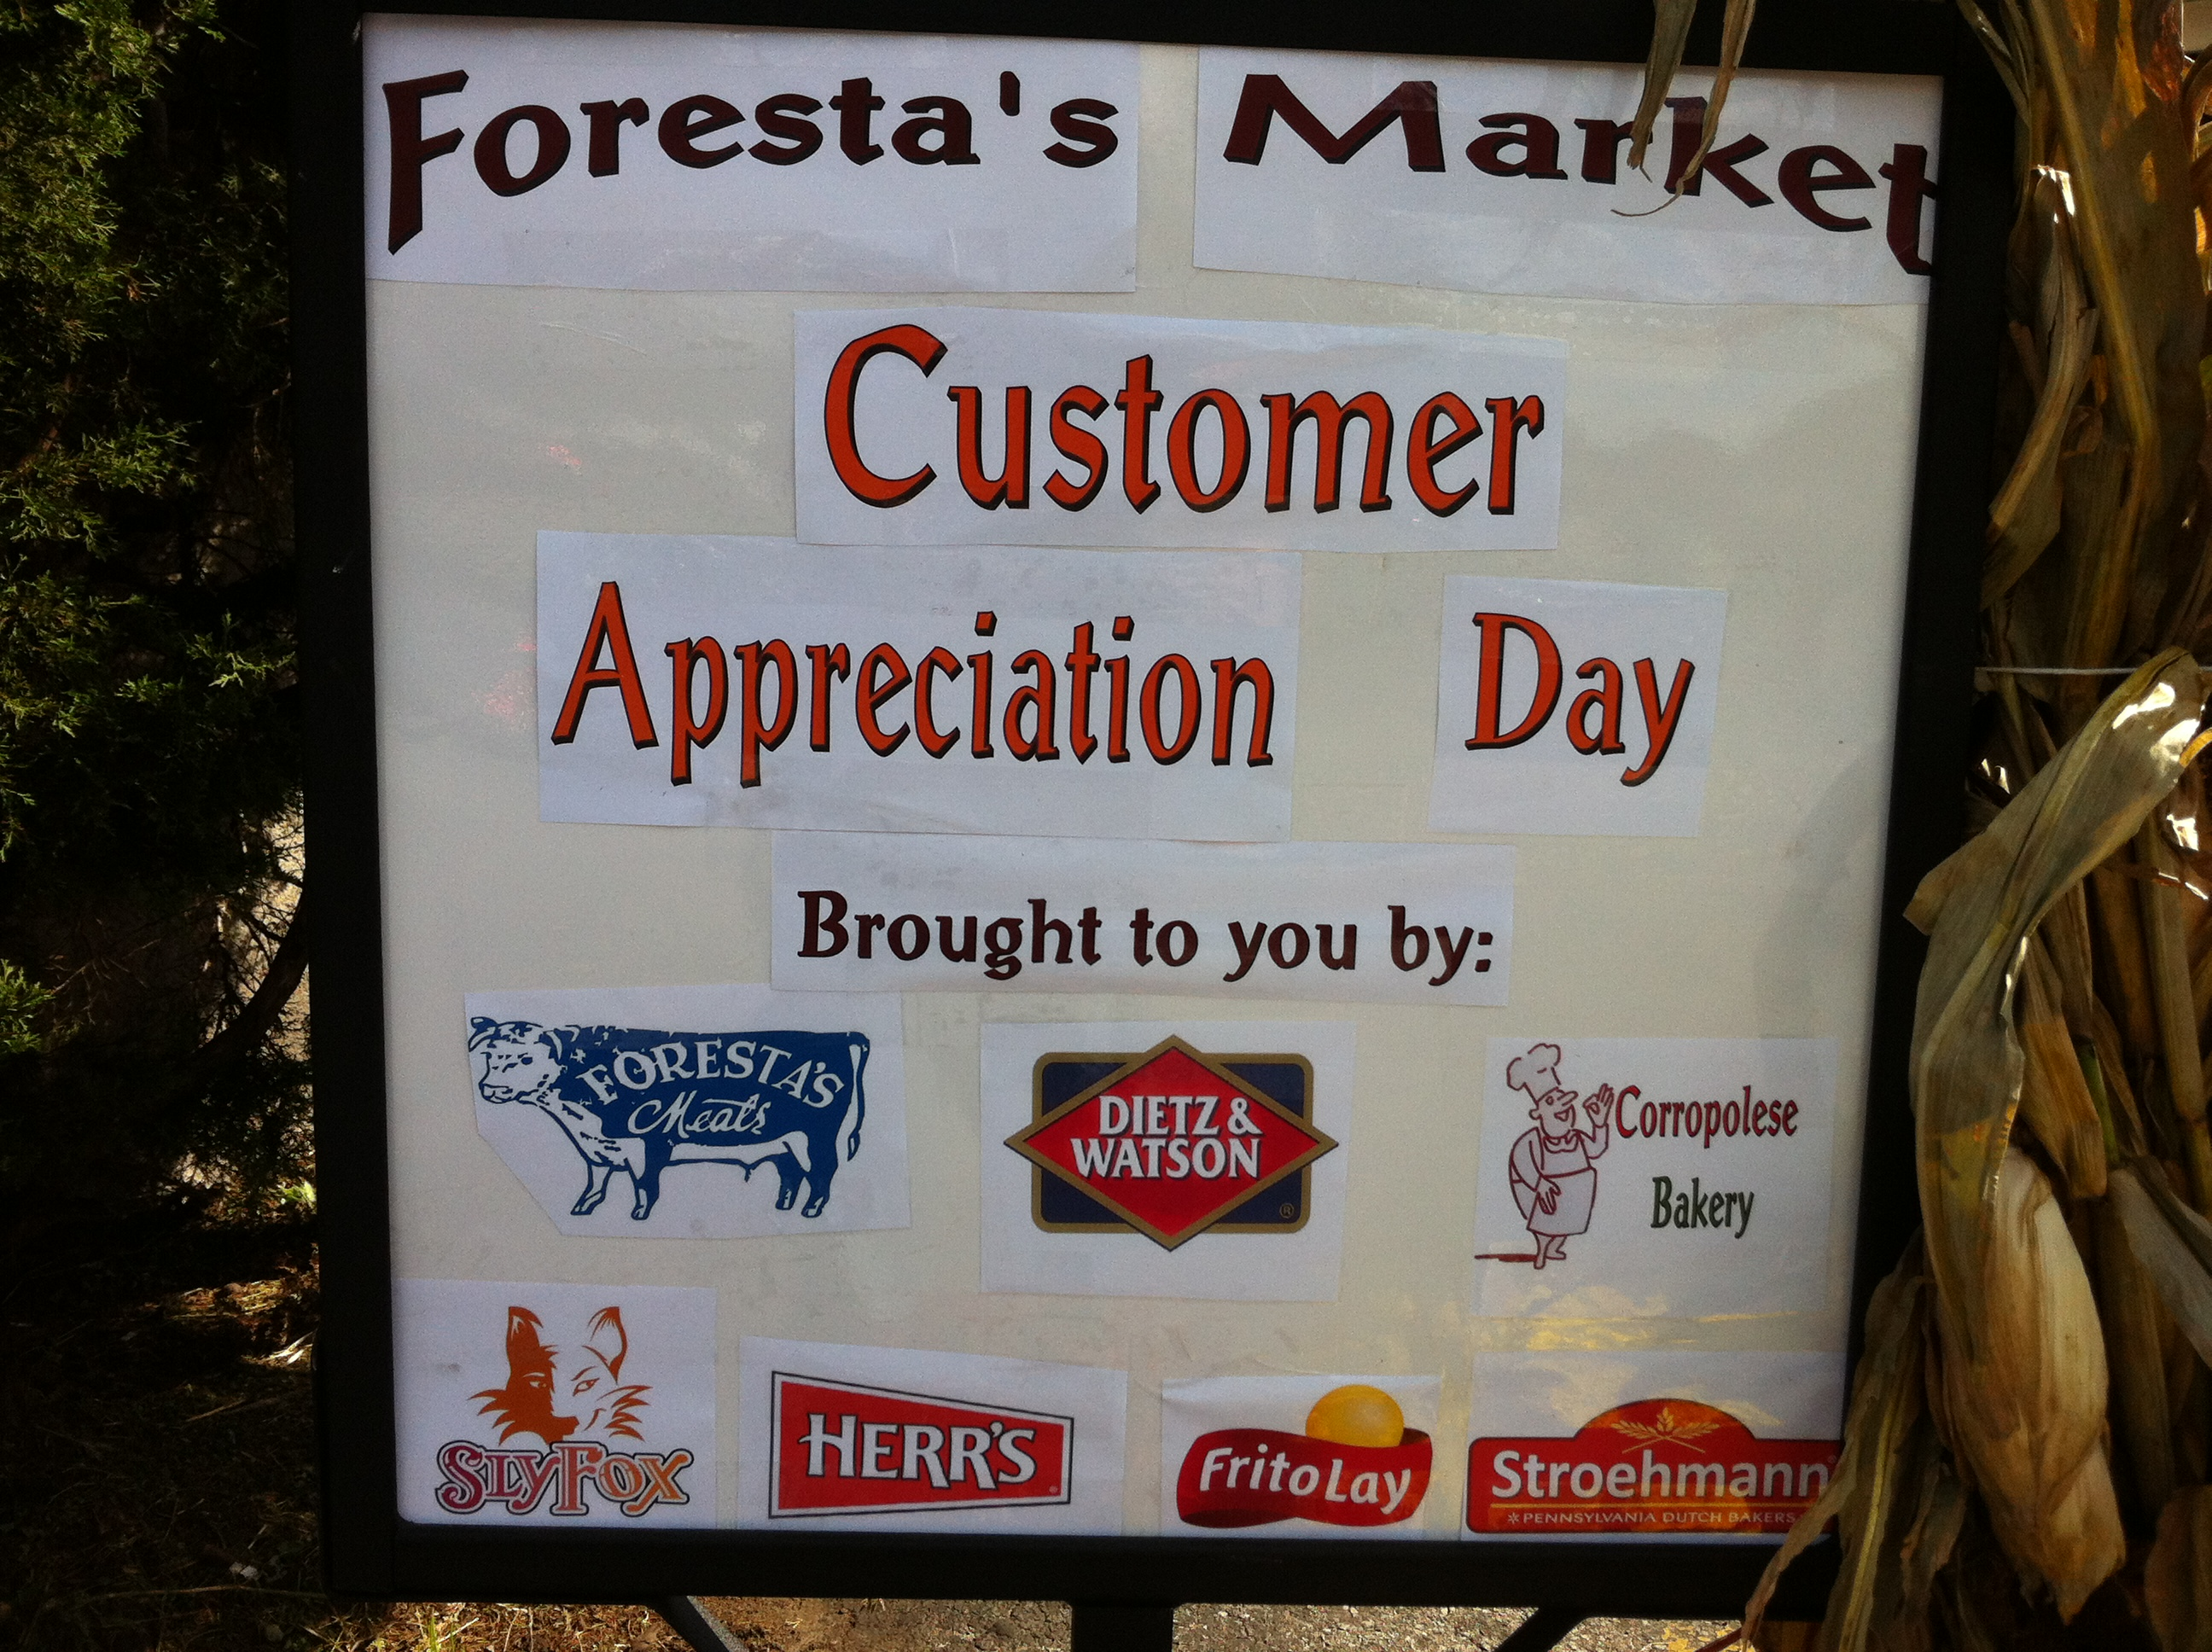 Customer Appreciation Day 2011 - 1836.5KB